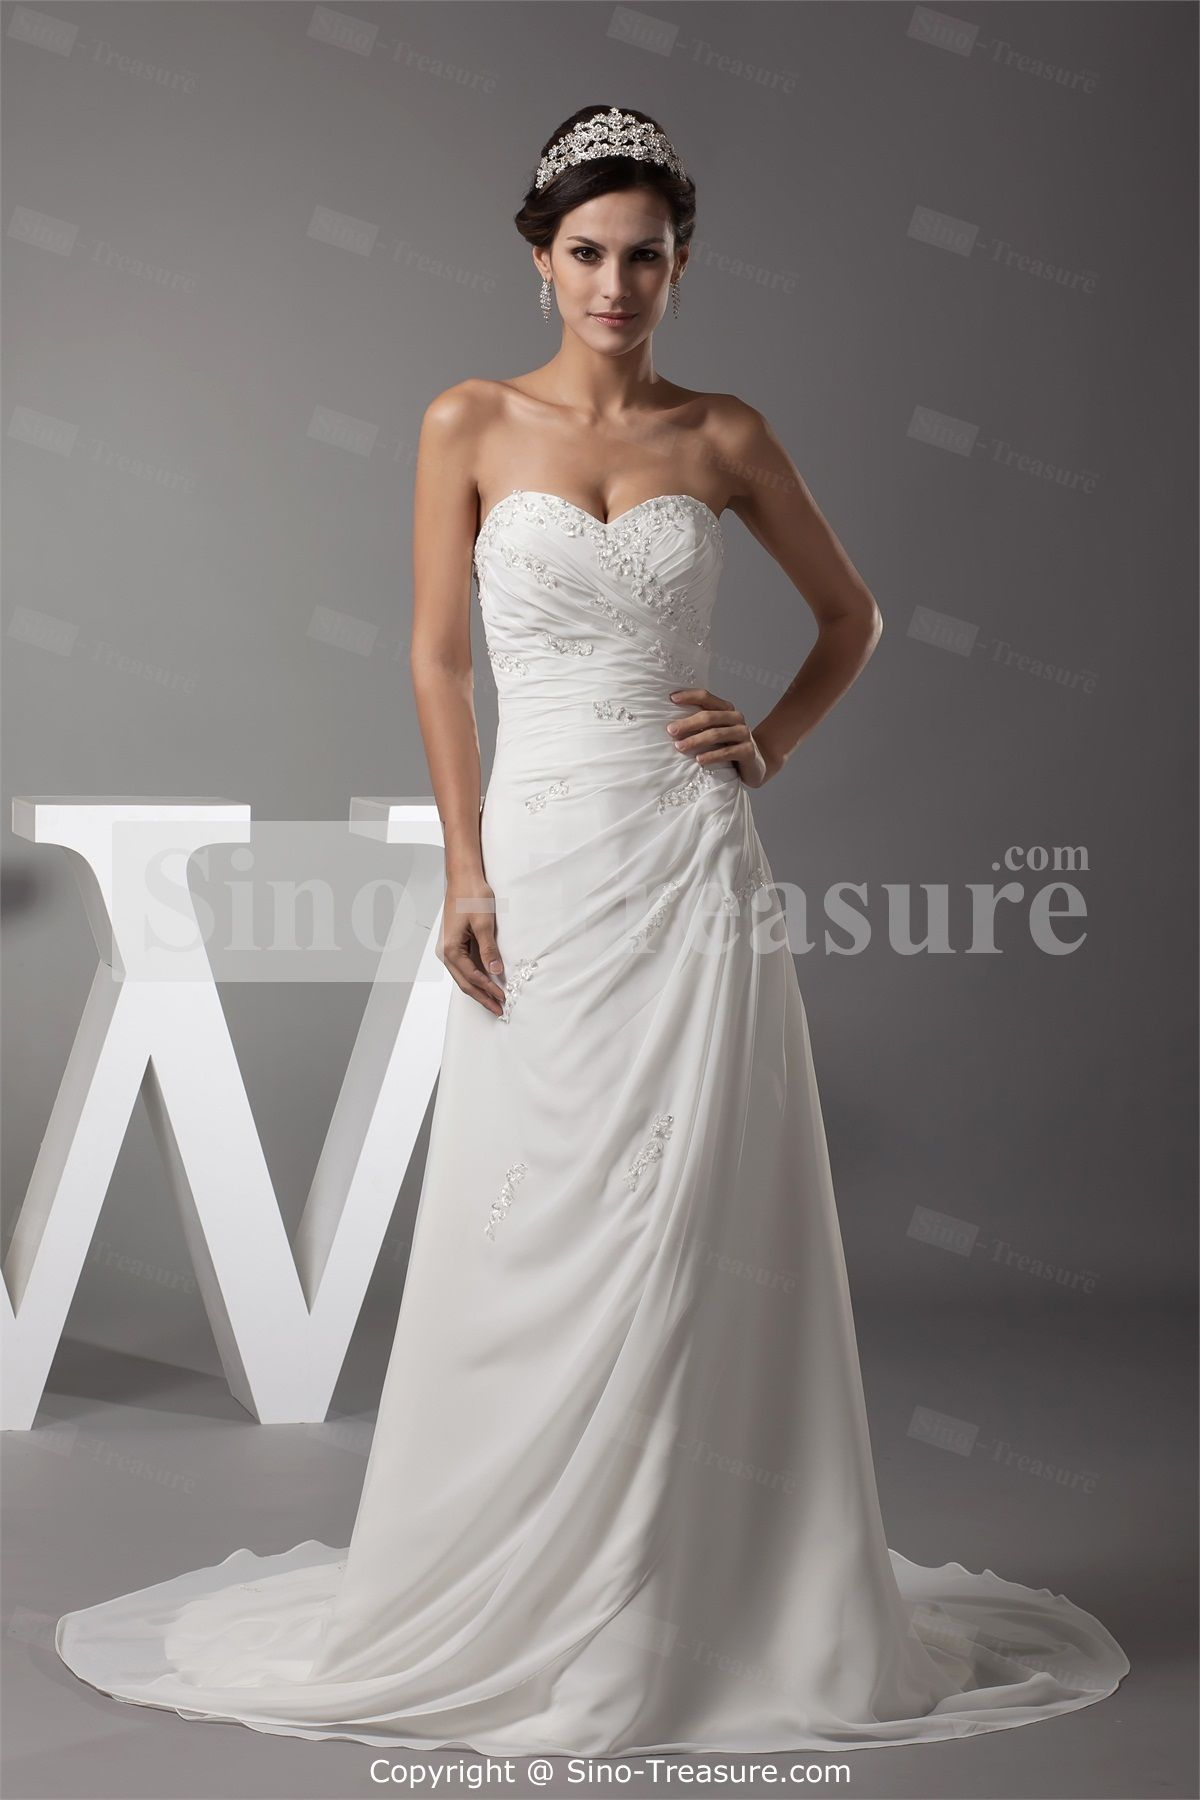 Strapless Beaded Embroidery And Ruffle Floor Length Chiffon Dresswithout That Ugly Tiara